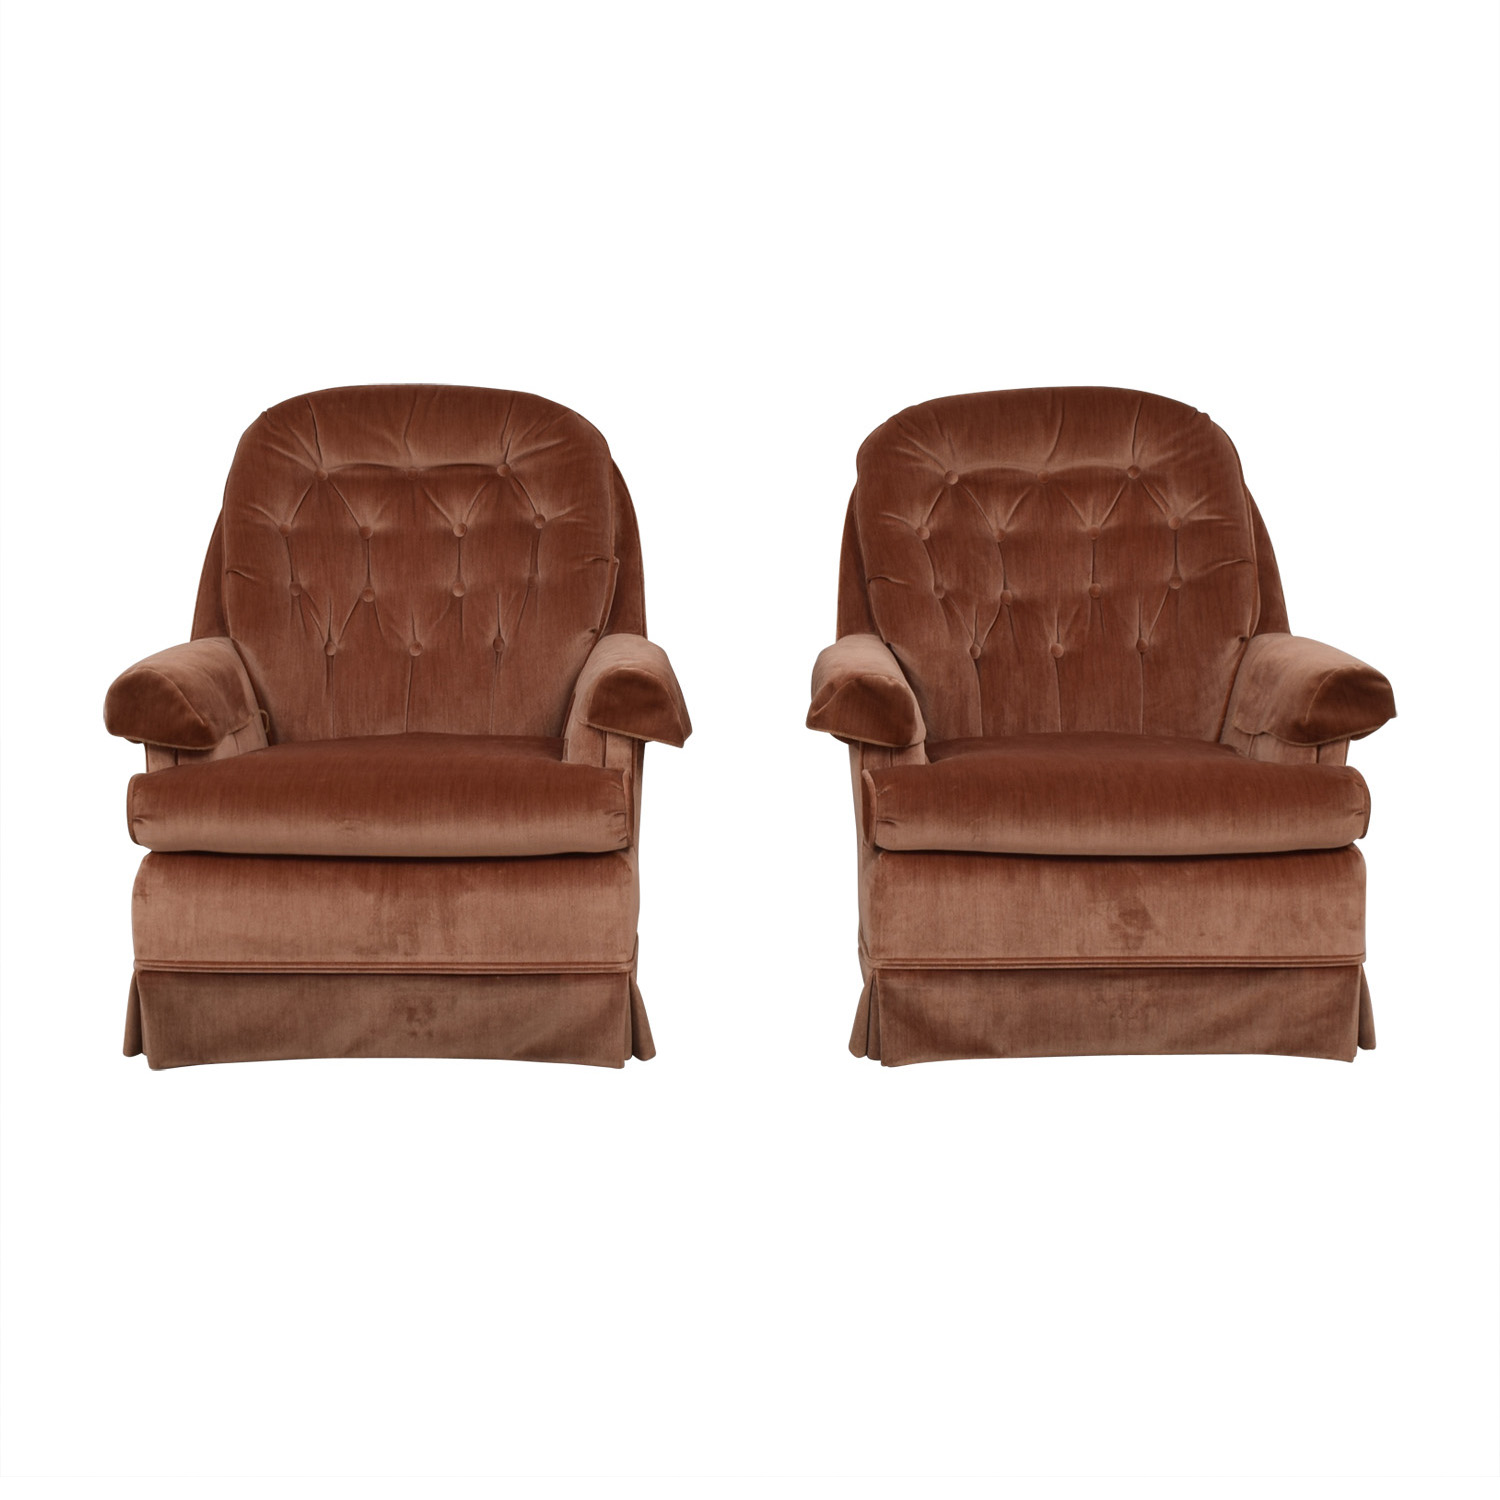 Broyhill Broyhill Tan Tufted Arm Accent Chairs tan